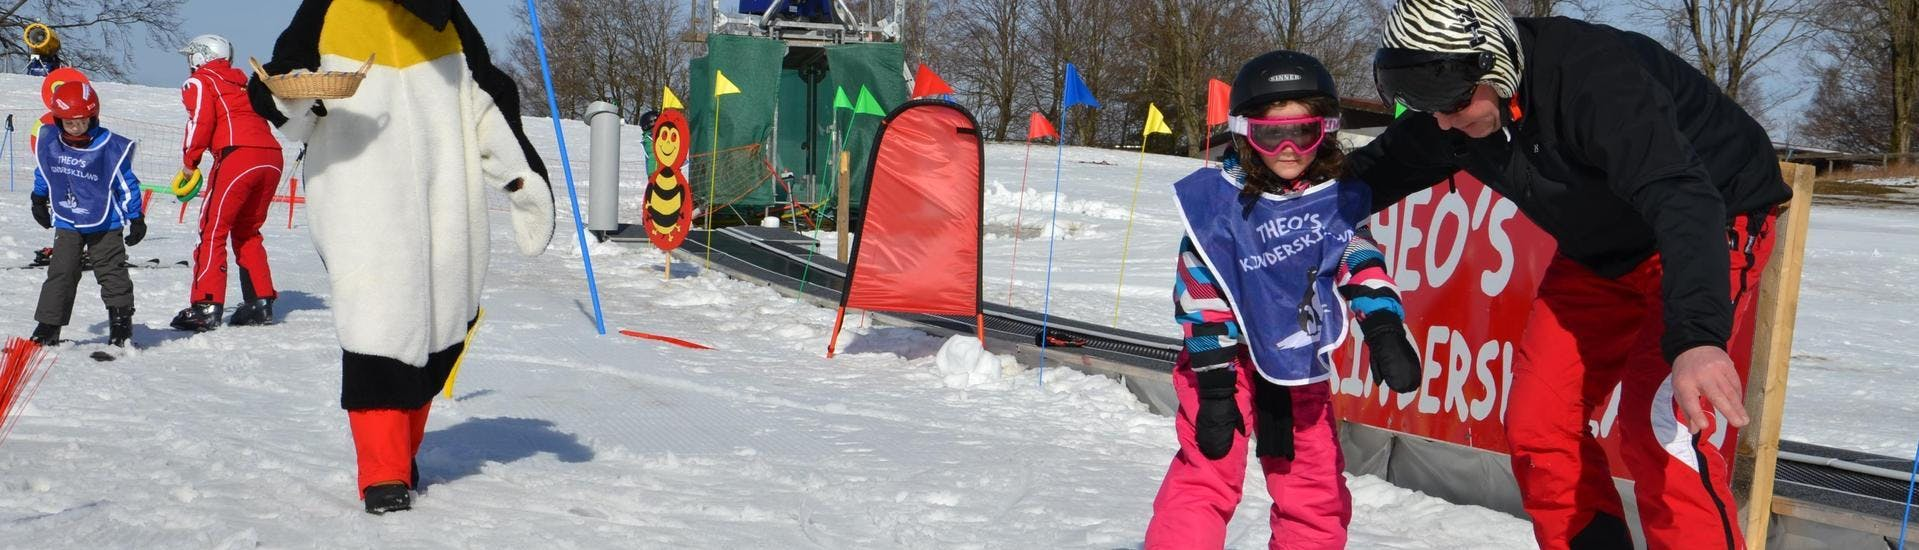 A child is learning to ski during one of the Private Ski Lessons for Kids (from 5 years) for All Levels with a caring instructor from the ski school DSV Skischule Züschen in the ski resort of Winterberg.